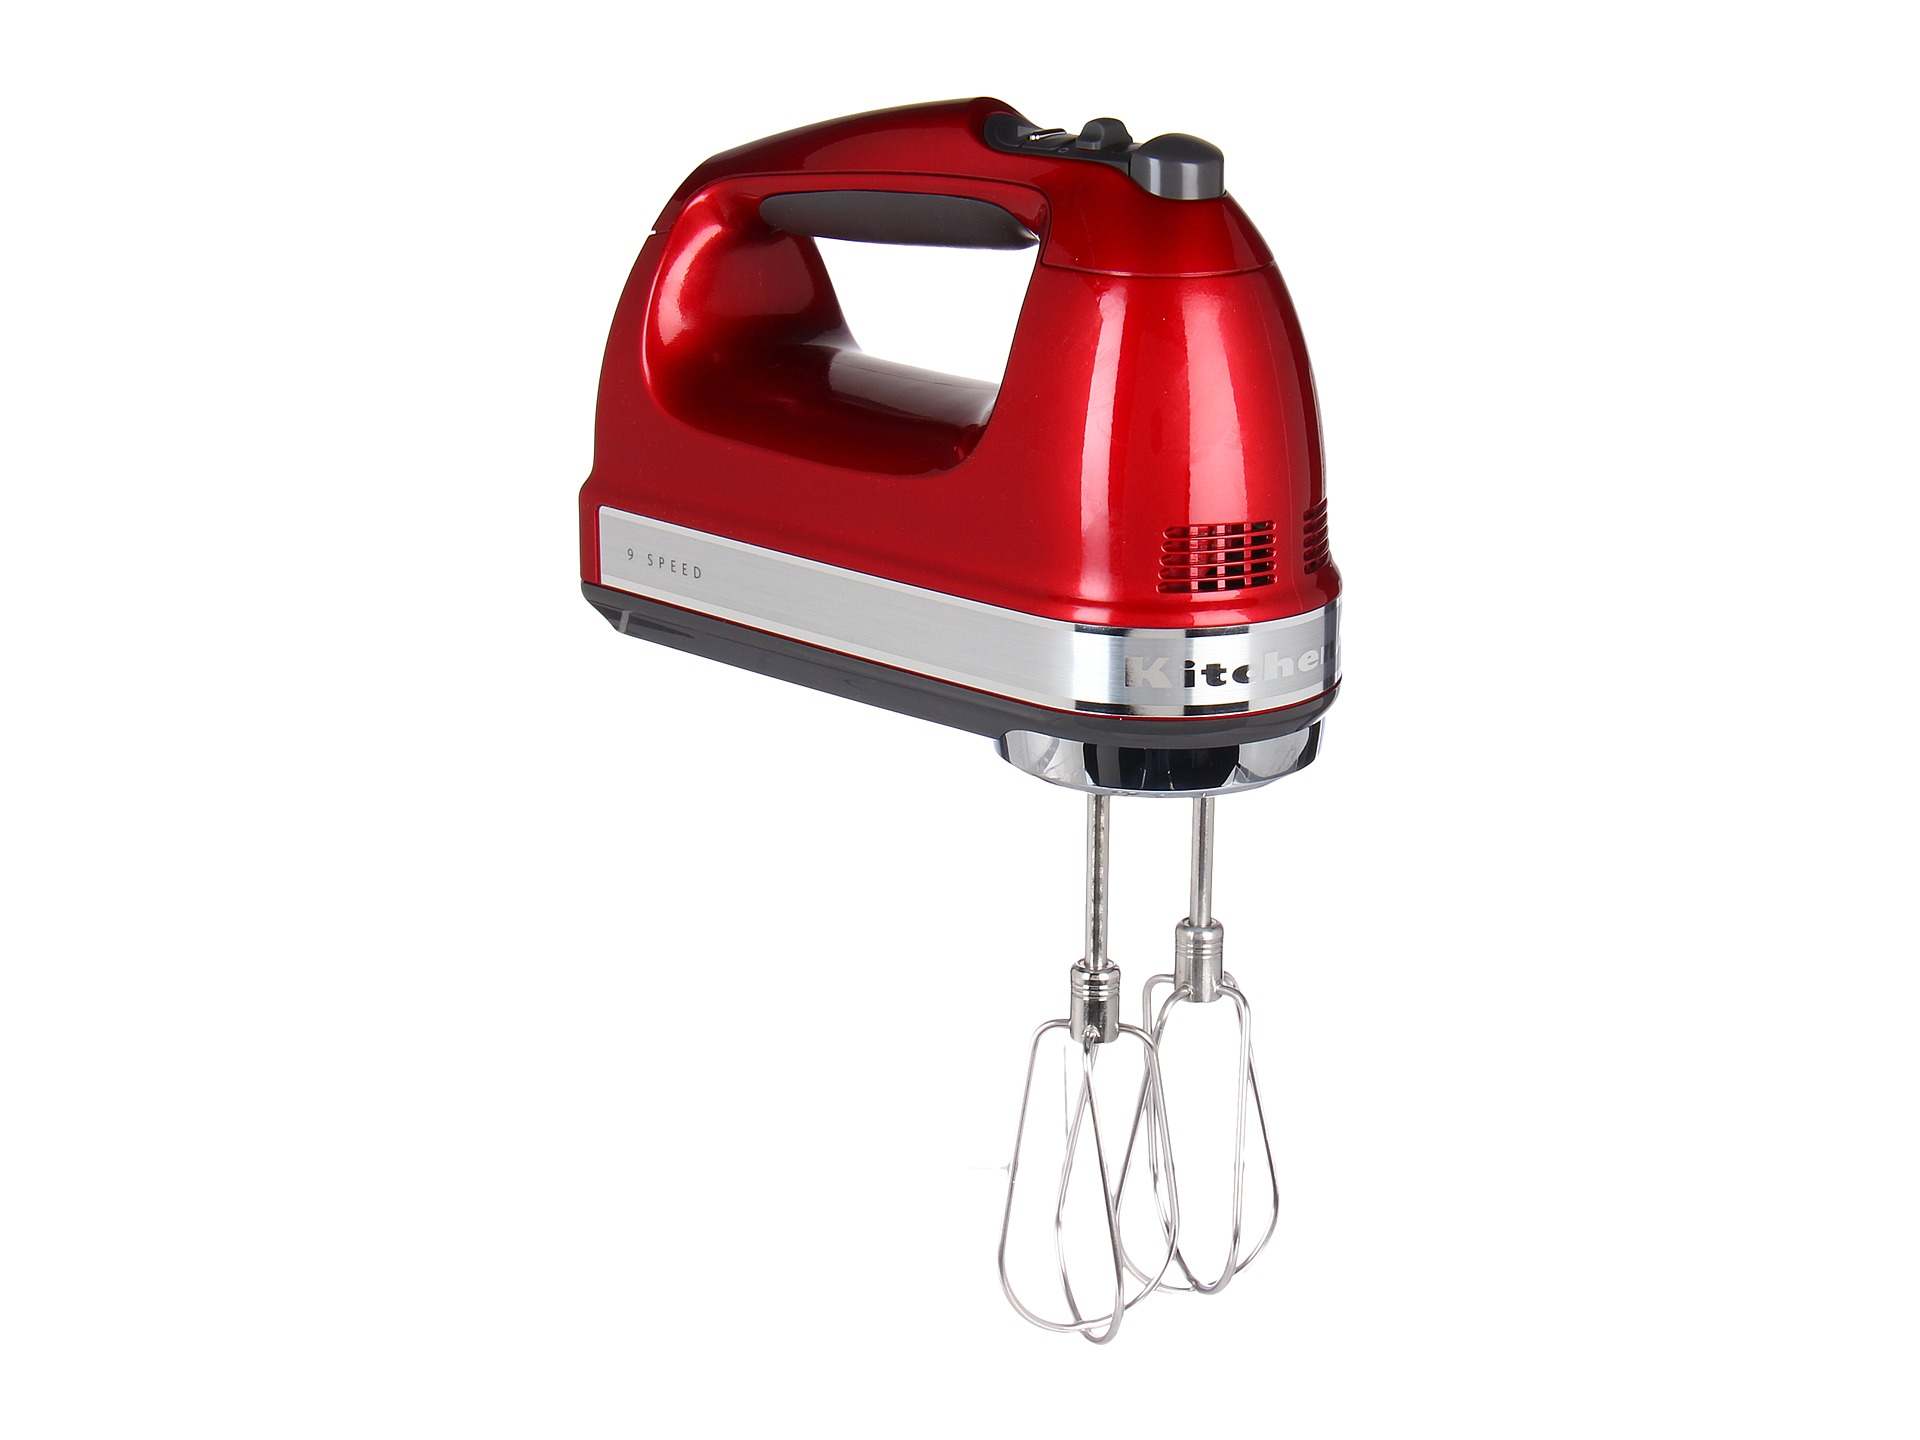 Kitchenaid khm926 9 speed hand mixer candy apple shipped for Kitchenaid hand mixer